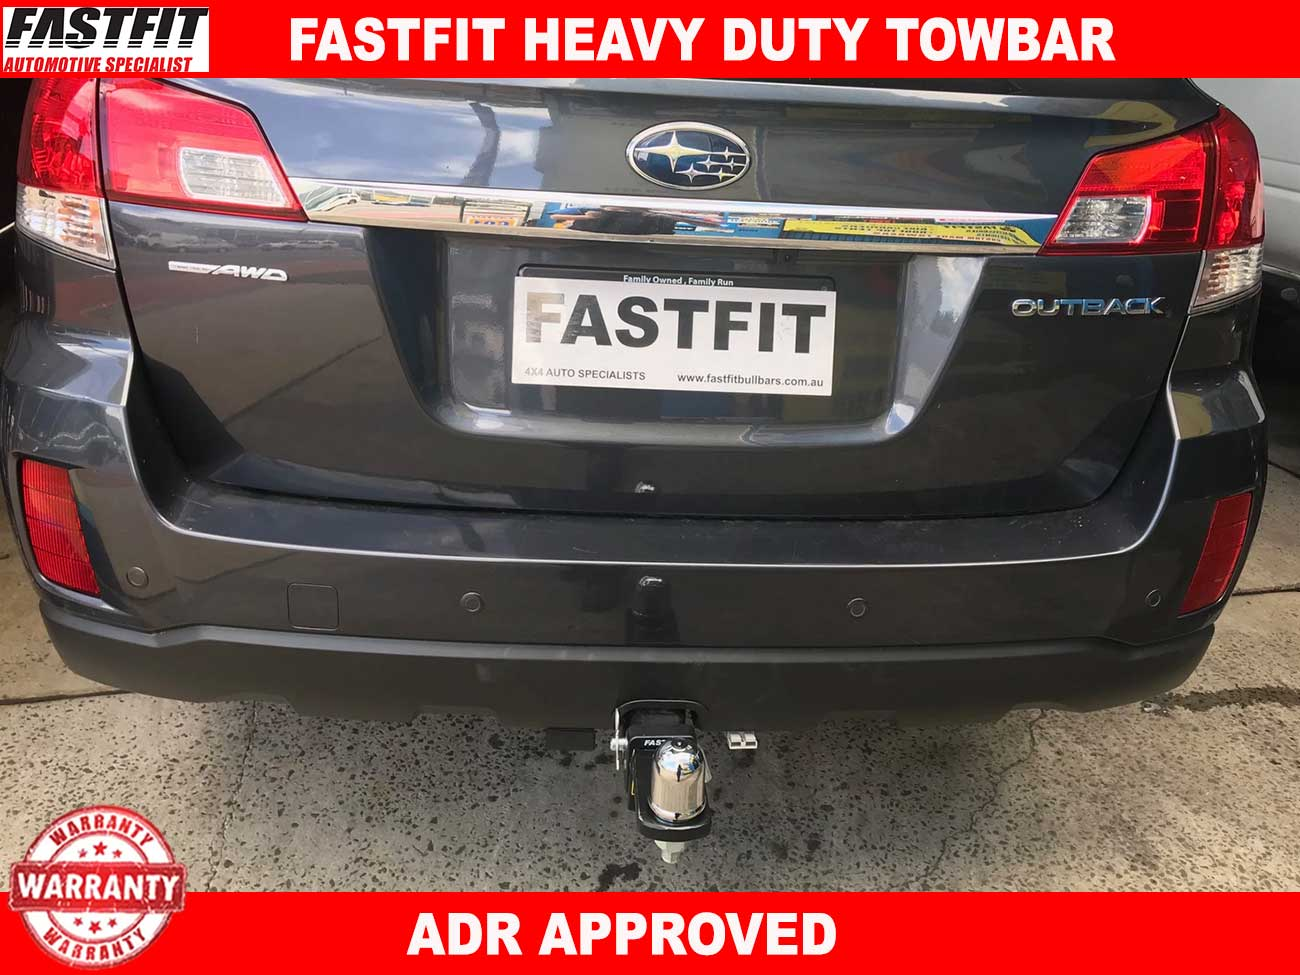 fastfit heavy duty towbar to suit subaru outback my 10 09 2009 2014